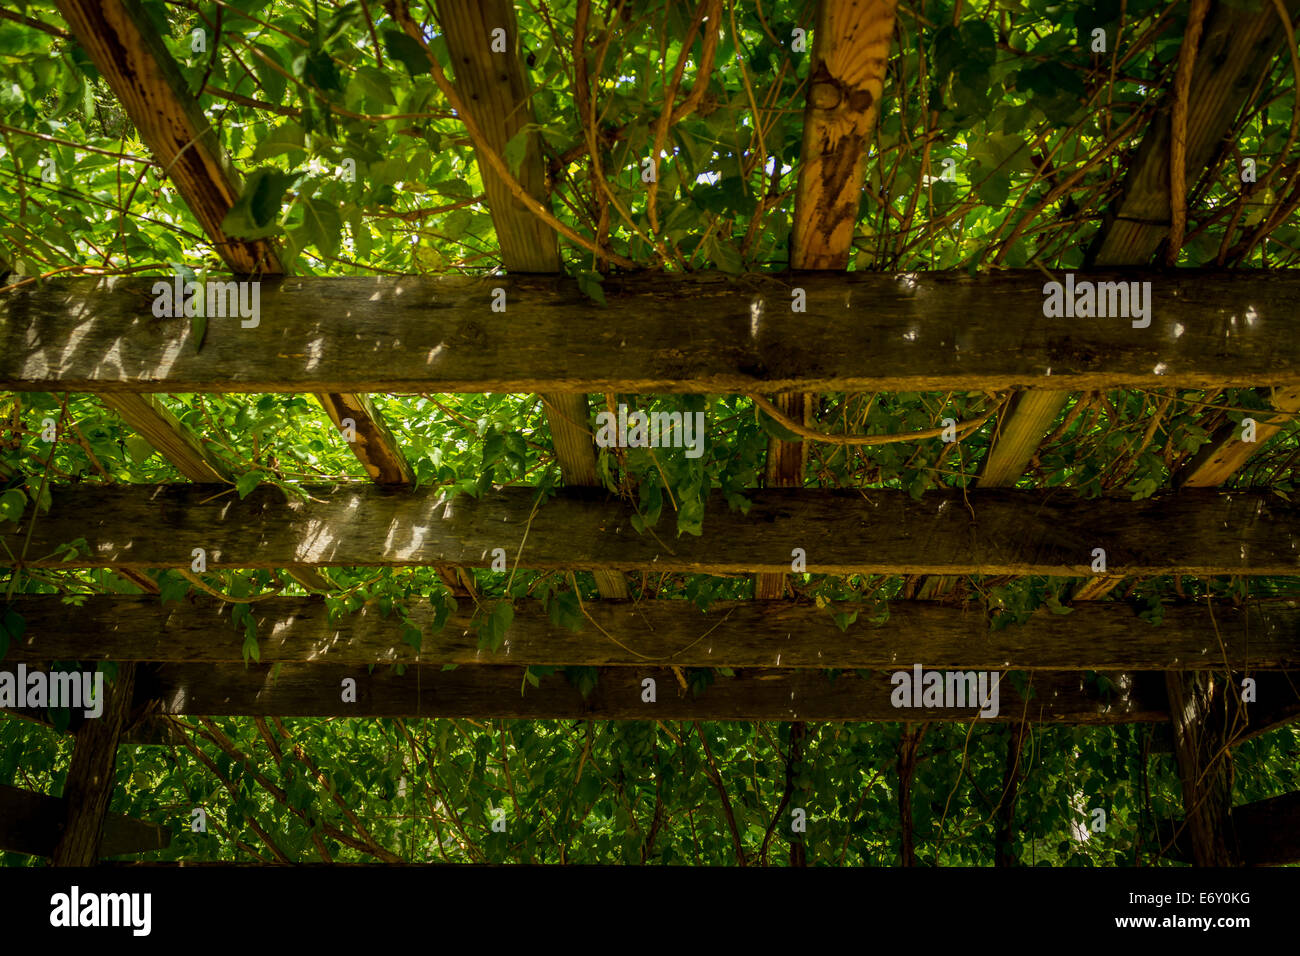 Cool shade provided by a vine-covered trellis on a hot summer day. - Stock Image